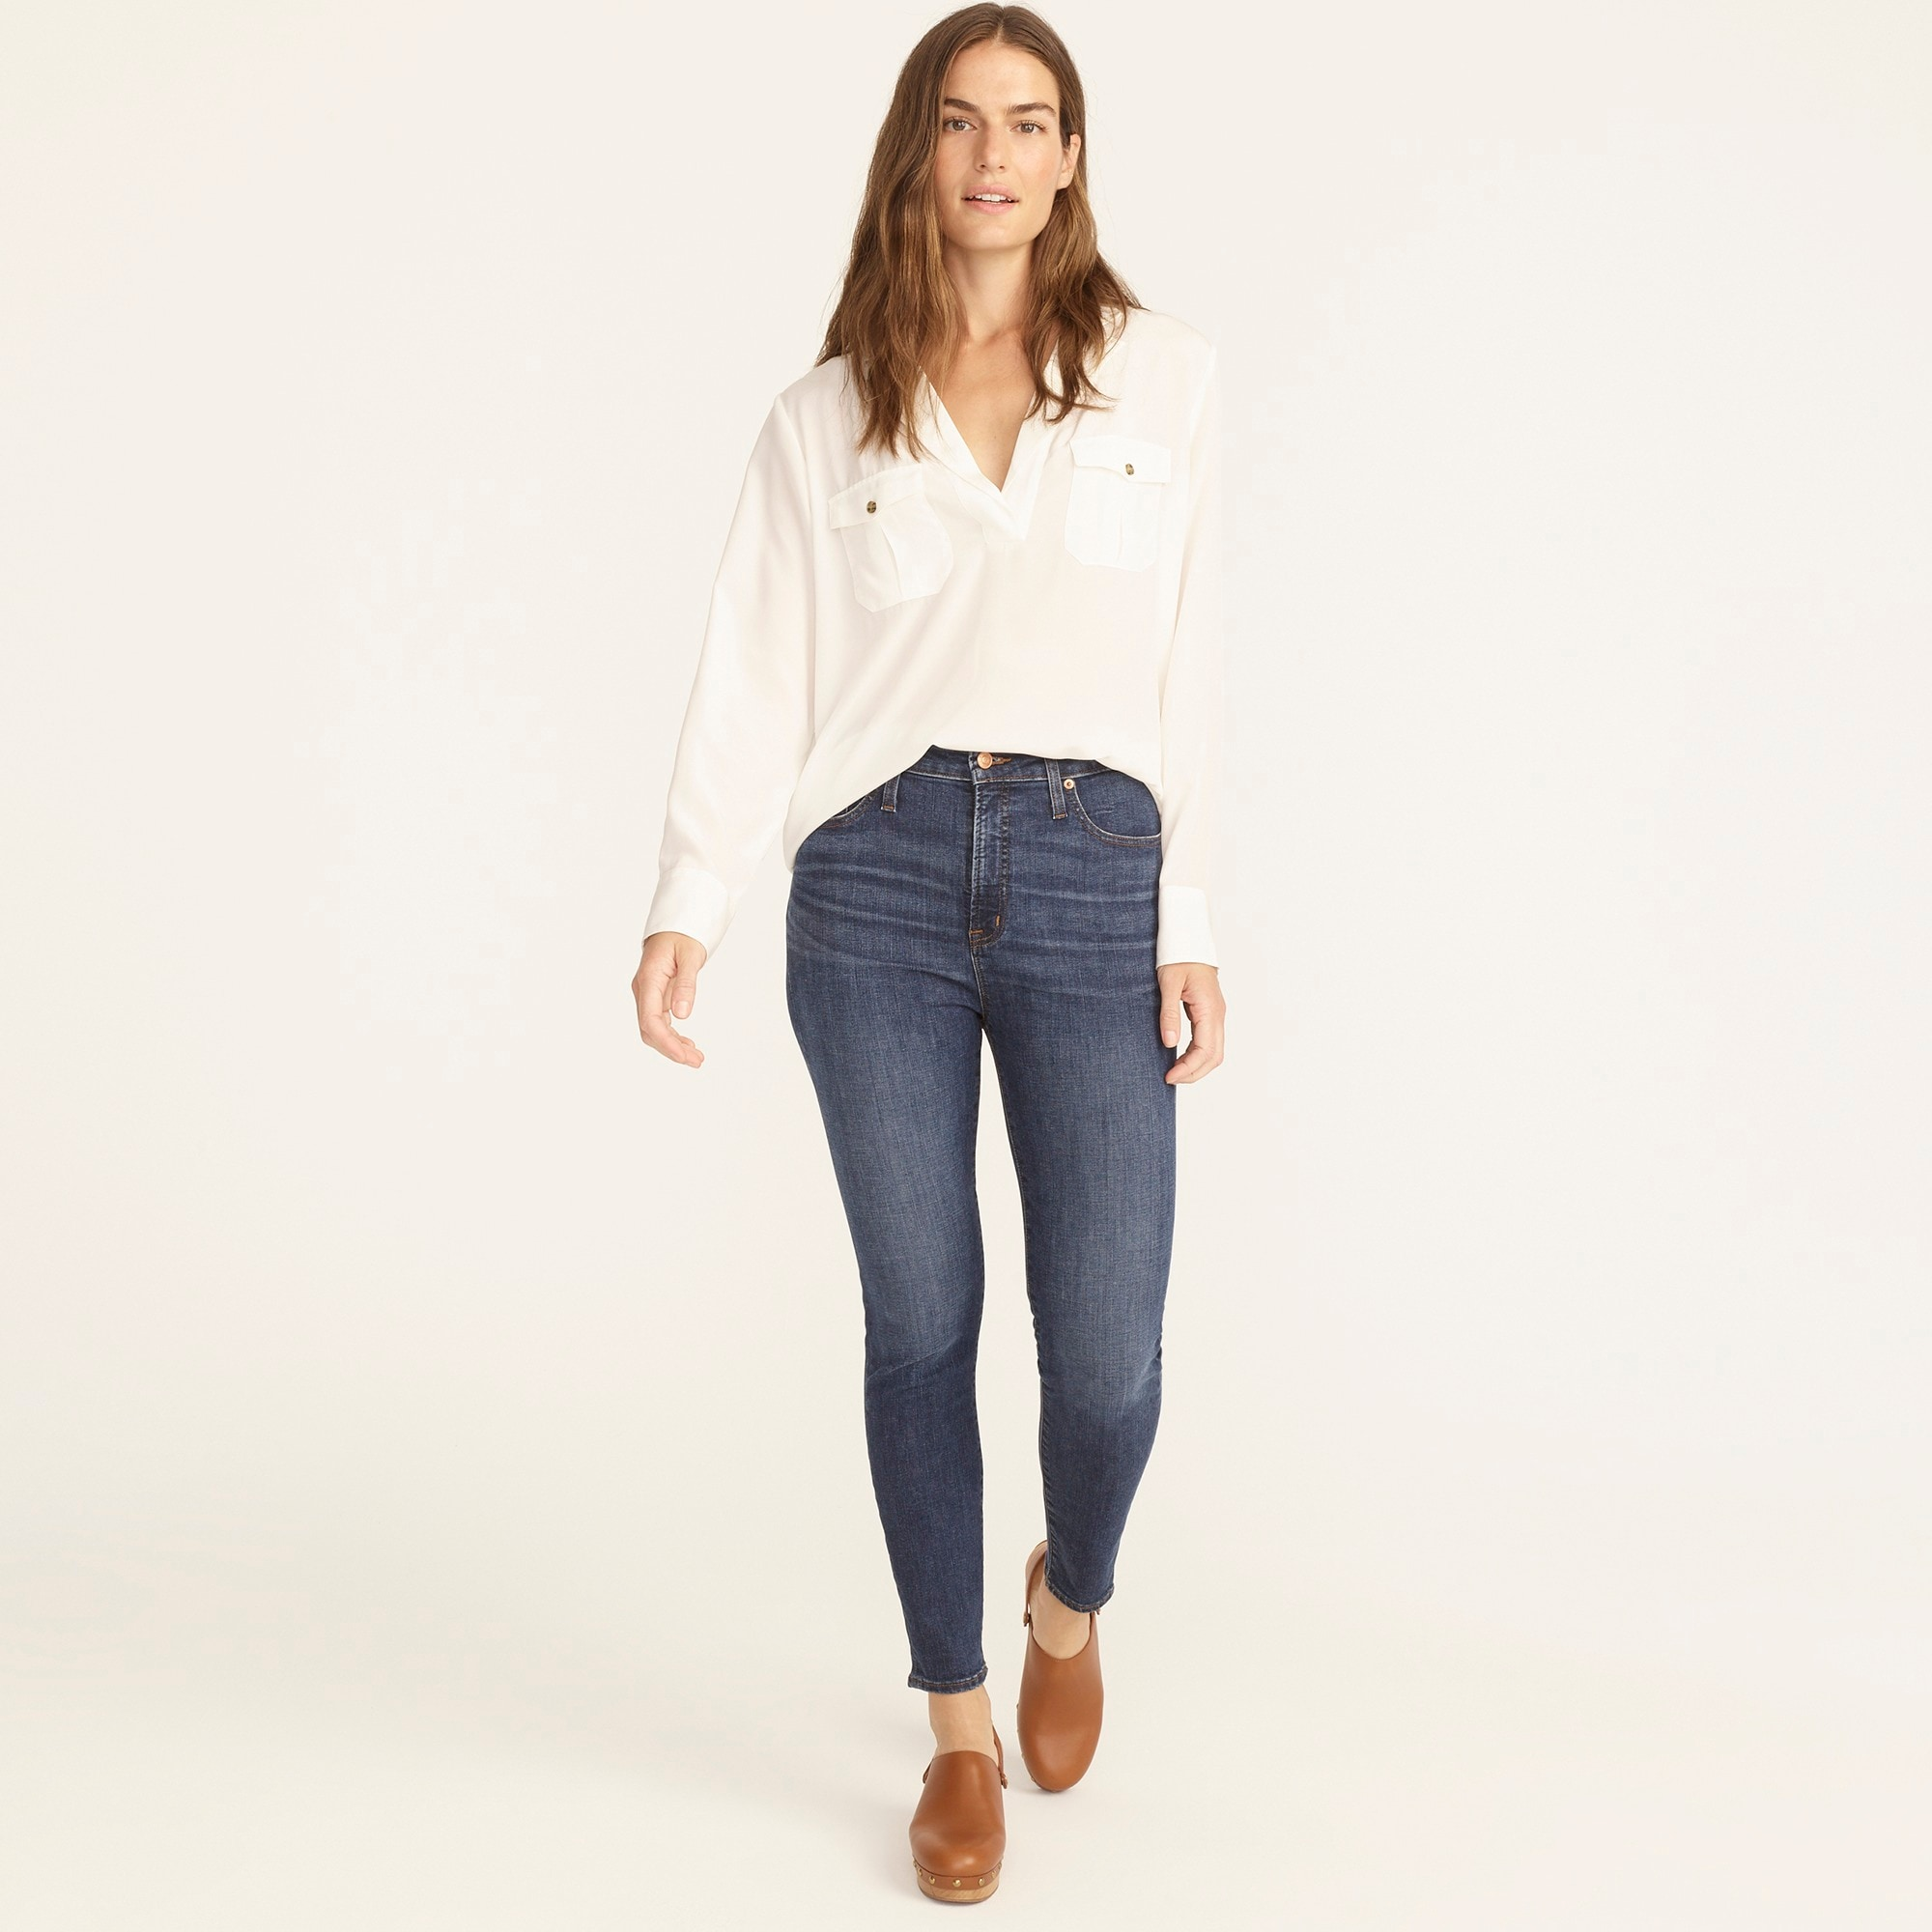 Image 1 for Tall curvy toothpick jean in Dryden wash